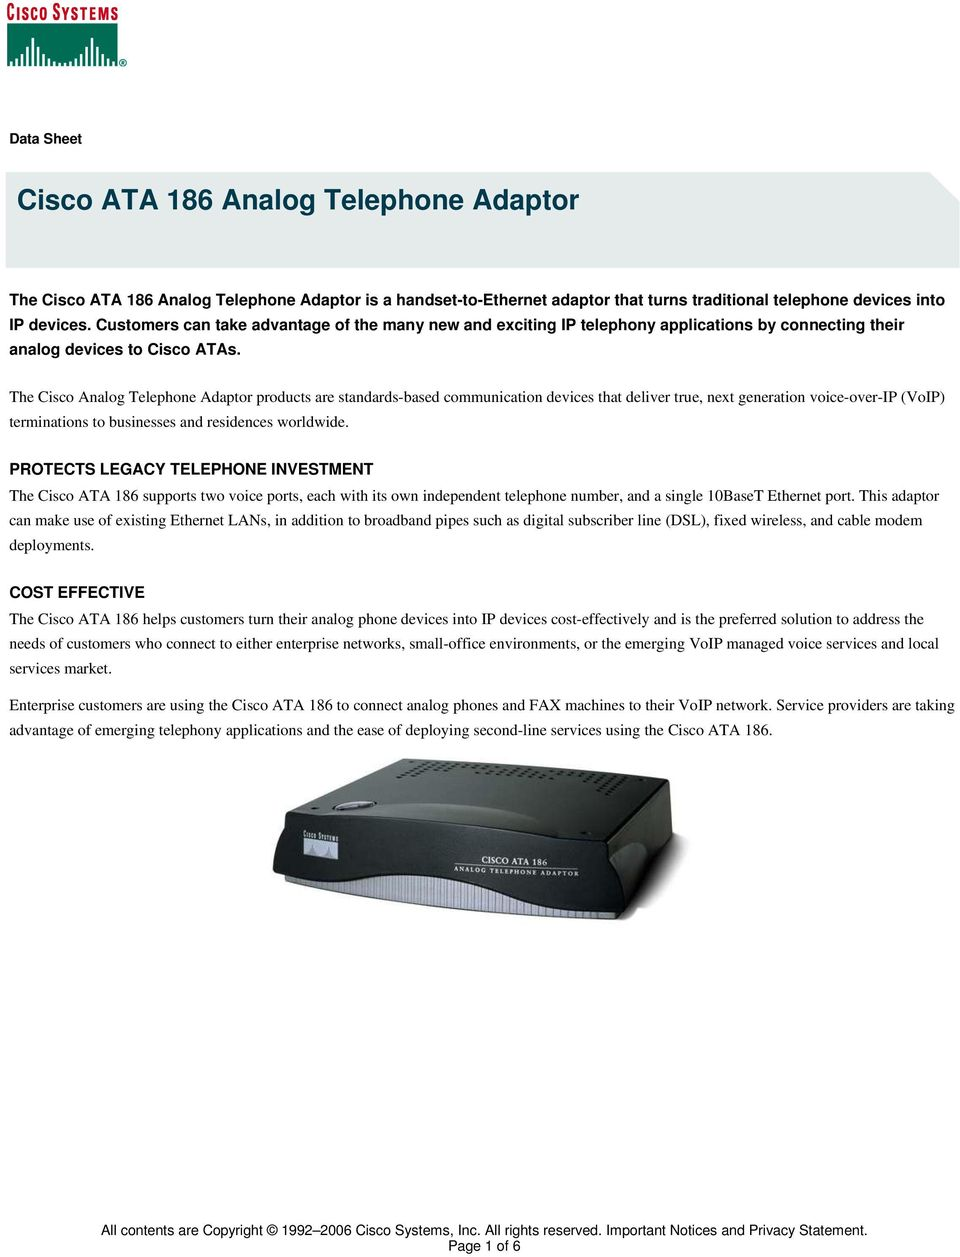 The Cisco Analog Telephone Adaptor products are standards-based communication devices that deliver true, next generation voice-over-ip (VoIP) terminations to businesses and residences worldwide.